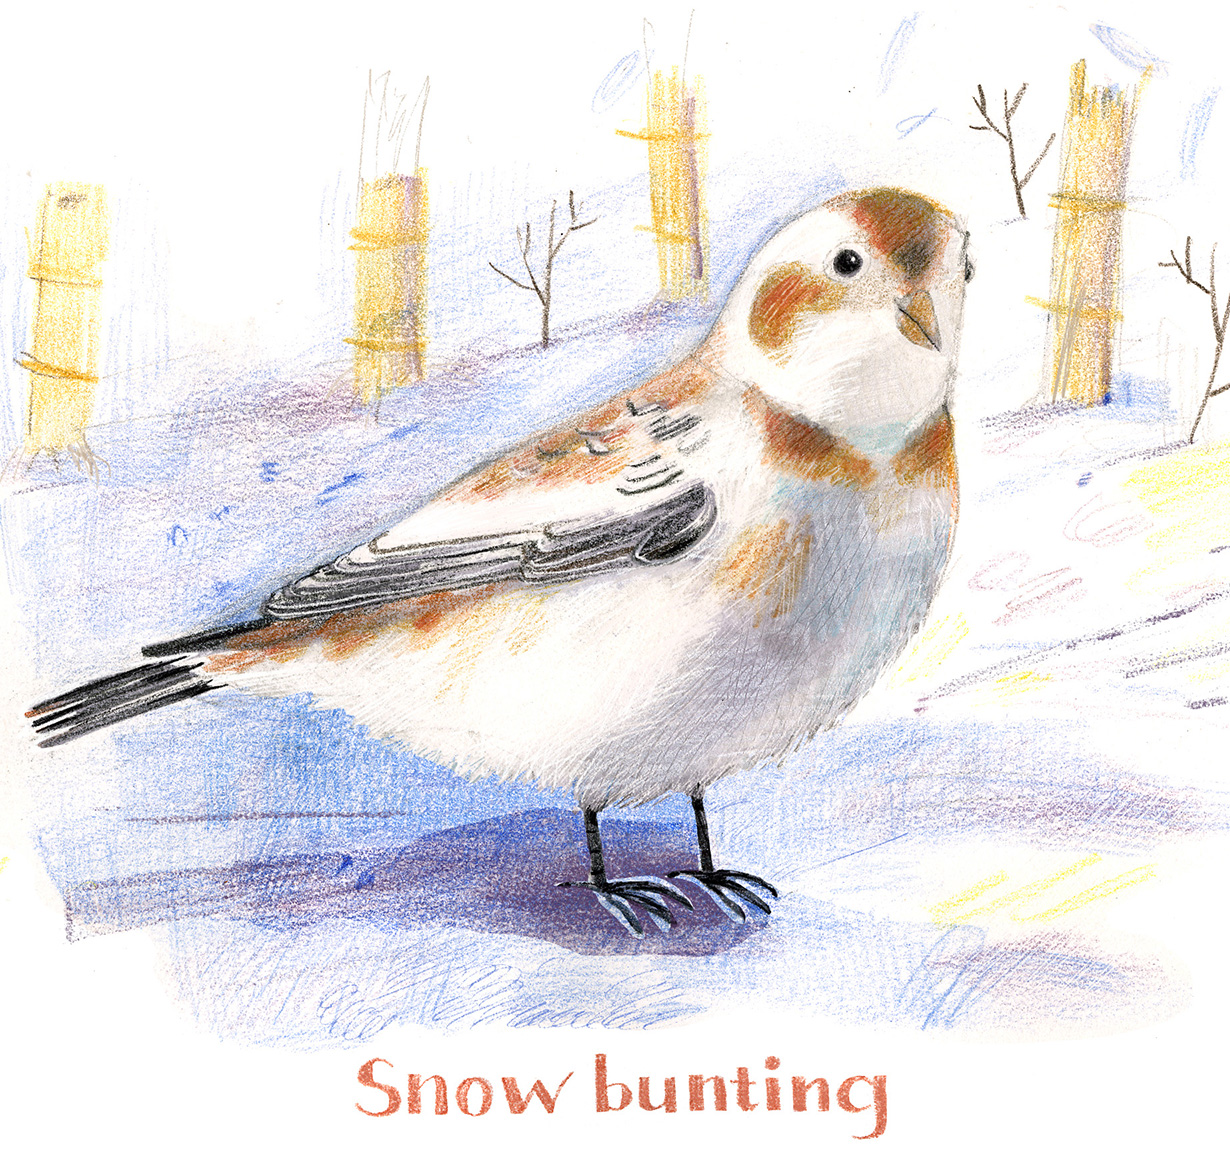 Illustration, Snow bunting on ground